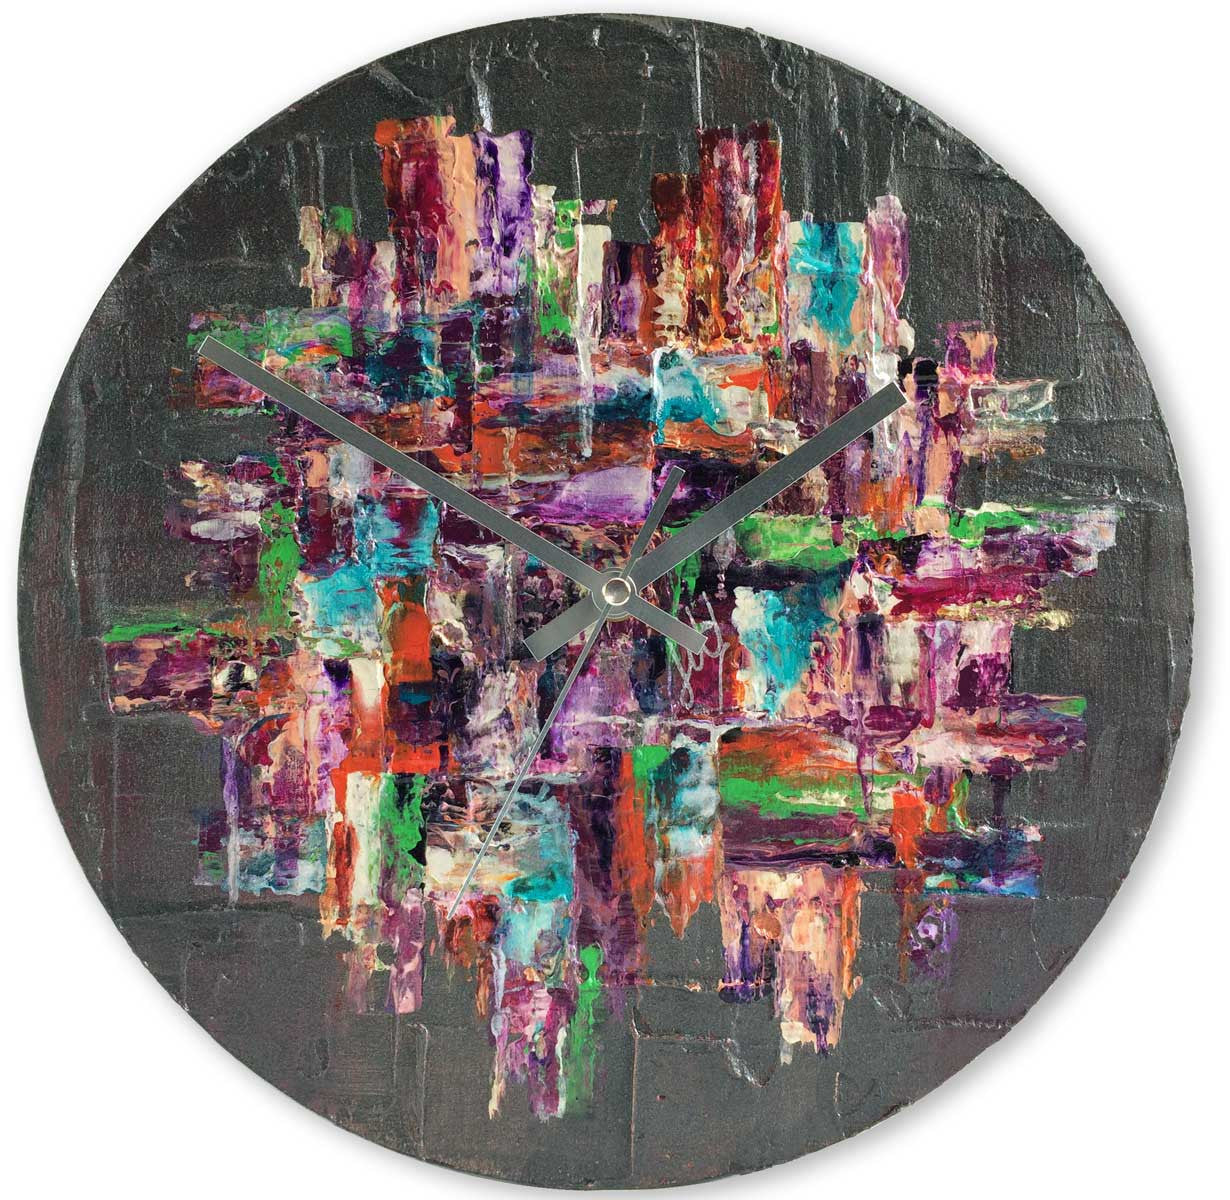 Round 30cm abstract wall clock - JLH30ROU4